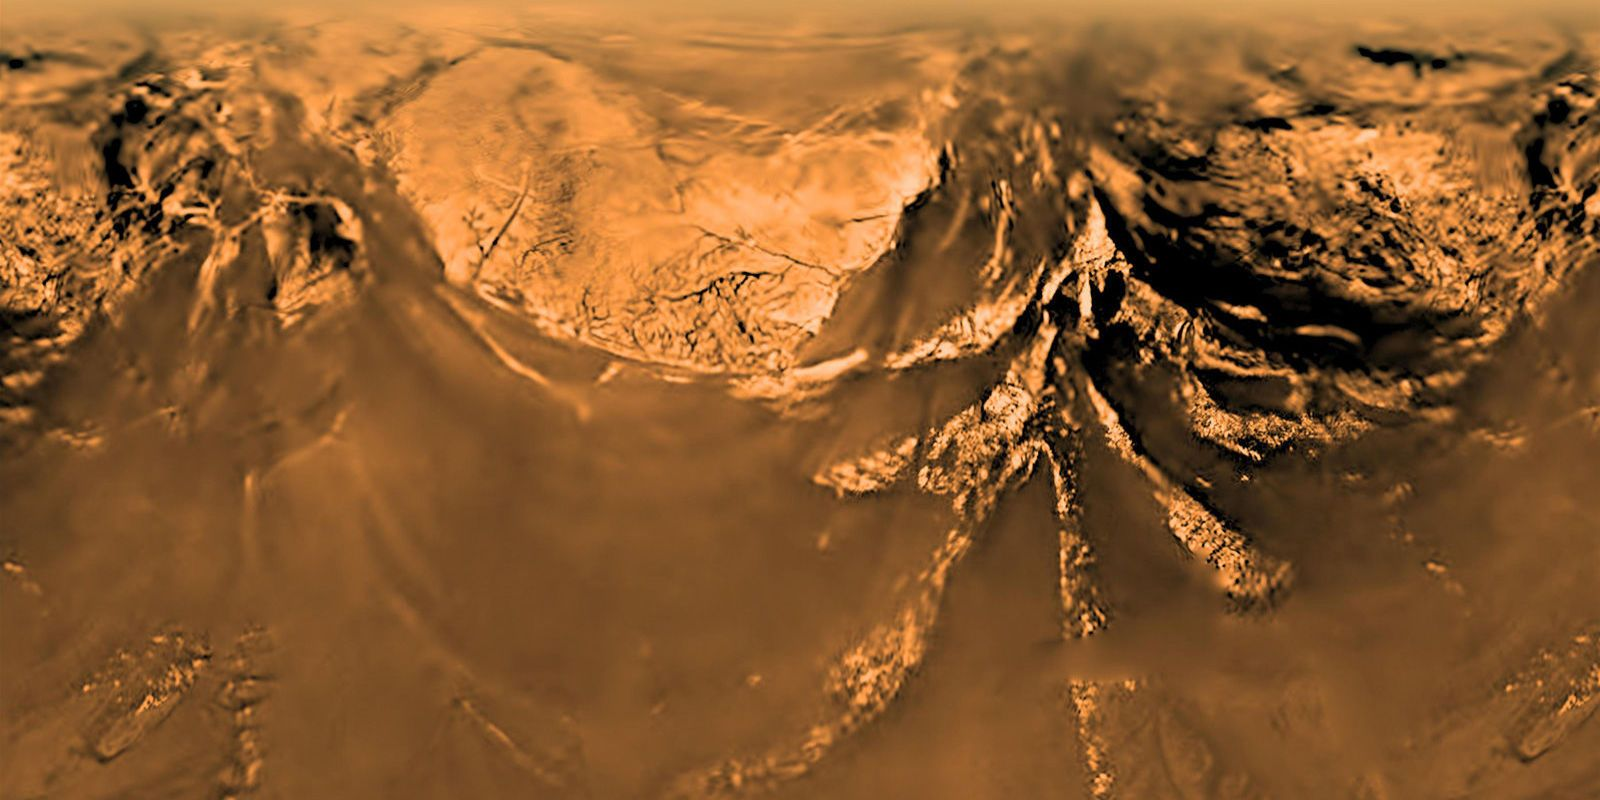 See What the Huygens Spacecraft Saw When It Landed on Titan